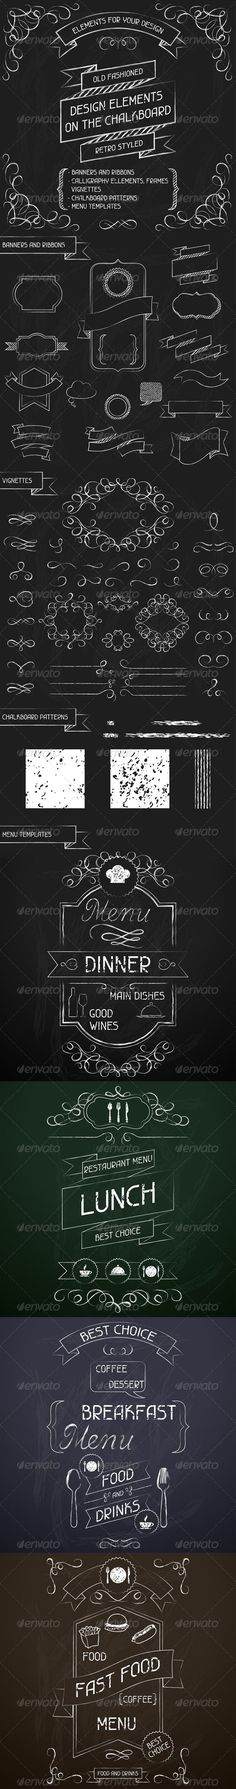 Chalkboard Designs Ideas find this pin and more on chalkboard ideas Design Elements On The Chalkboard